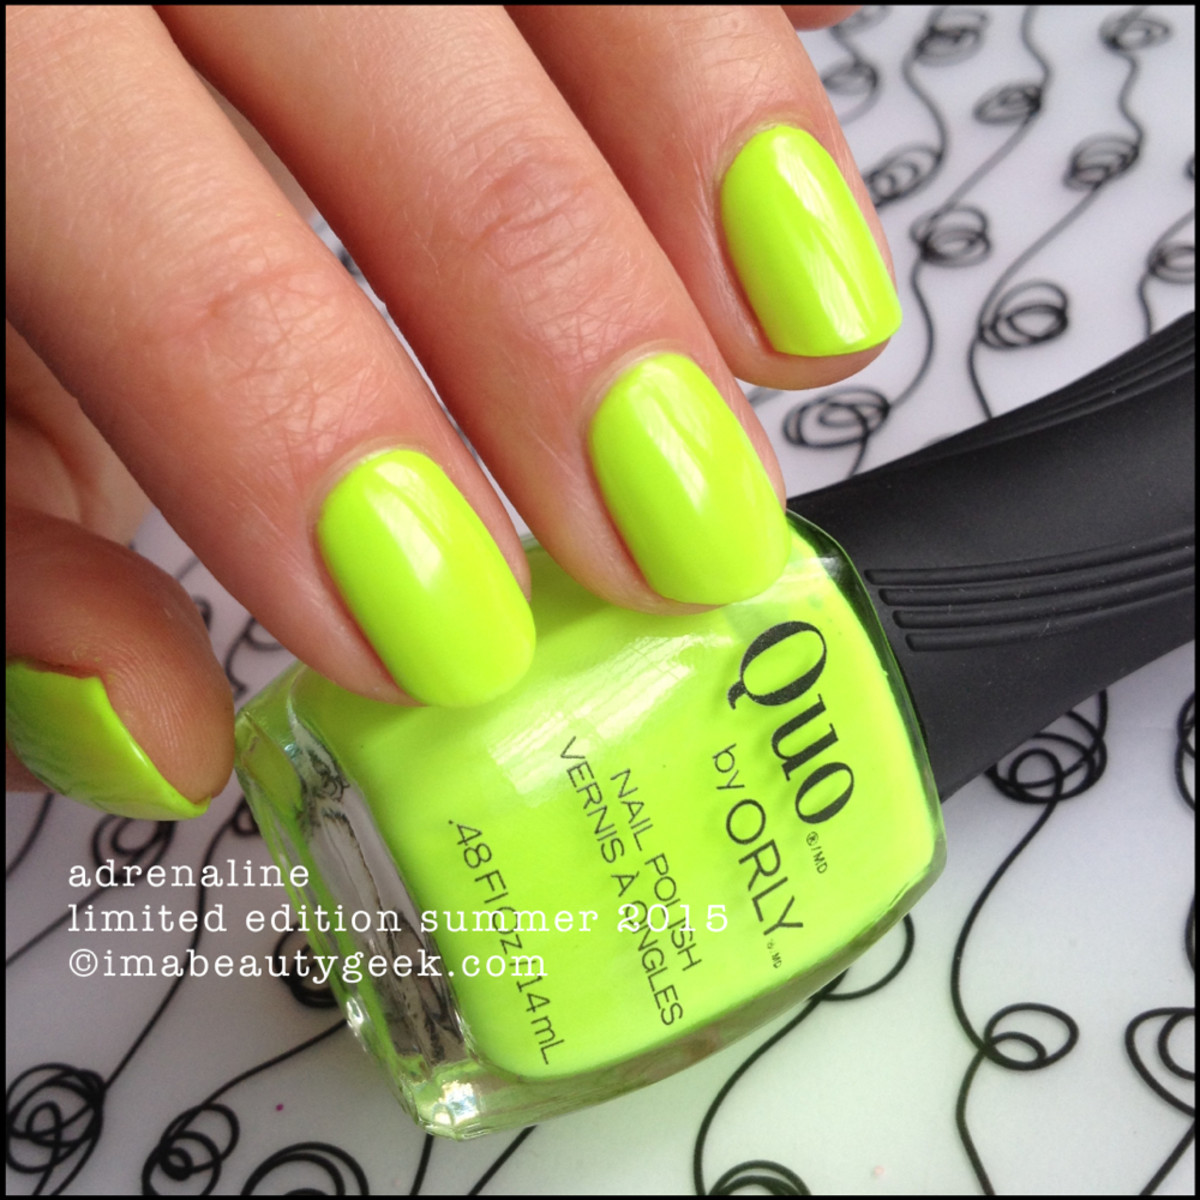 Quo by Orly Adrenaline - Orly Thrill Seeker Summer 2015